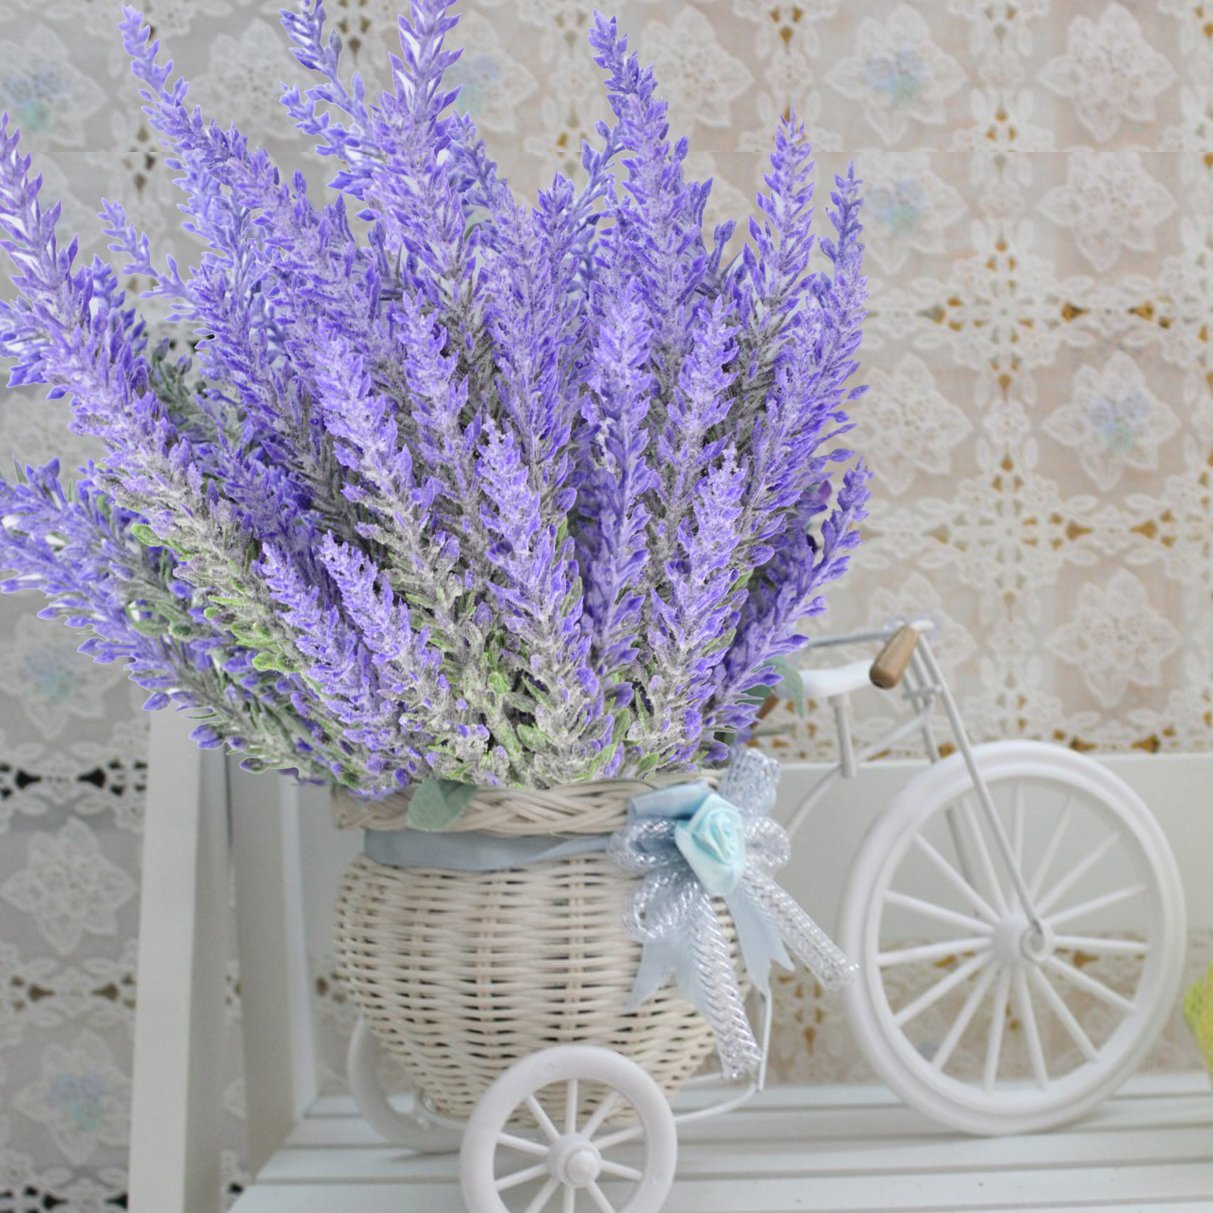 8 Bundles Of Artificial Lavender The Artificial Flowers